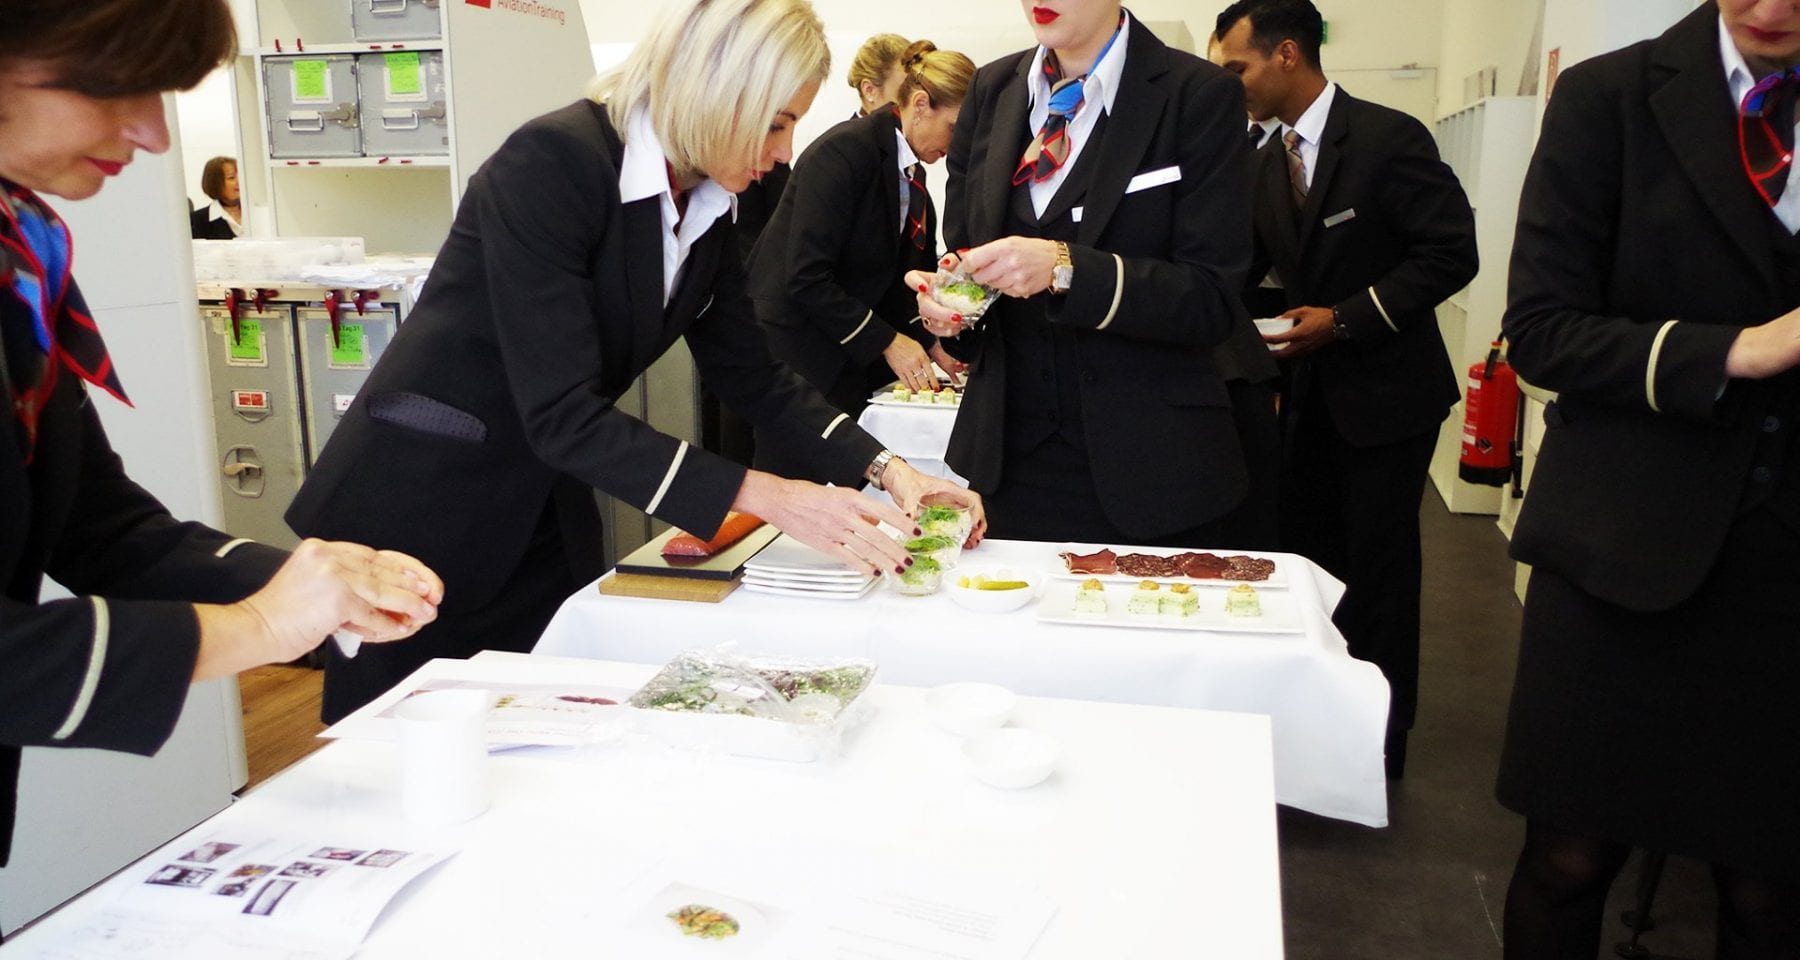 Swiss First Class cabin crew food training